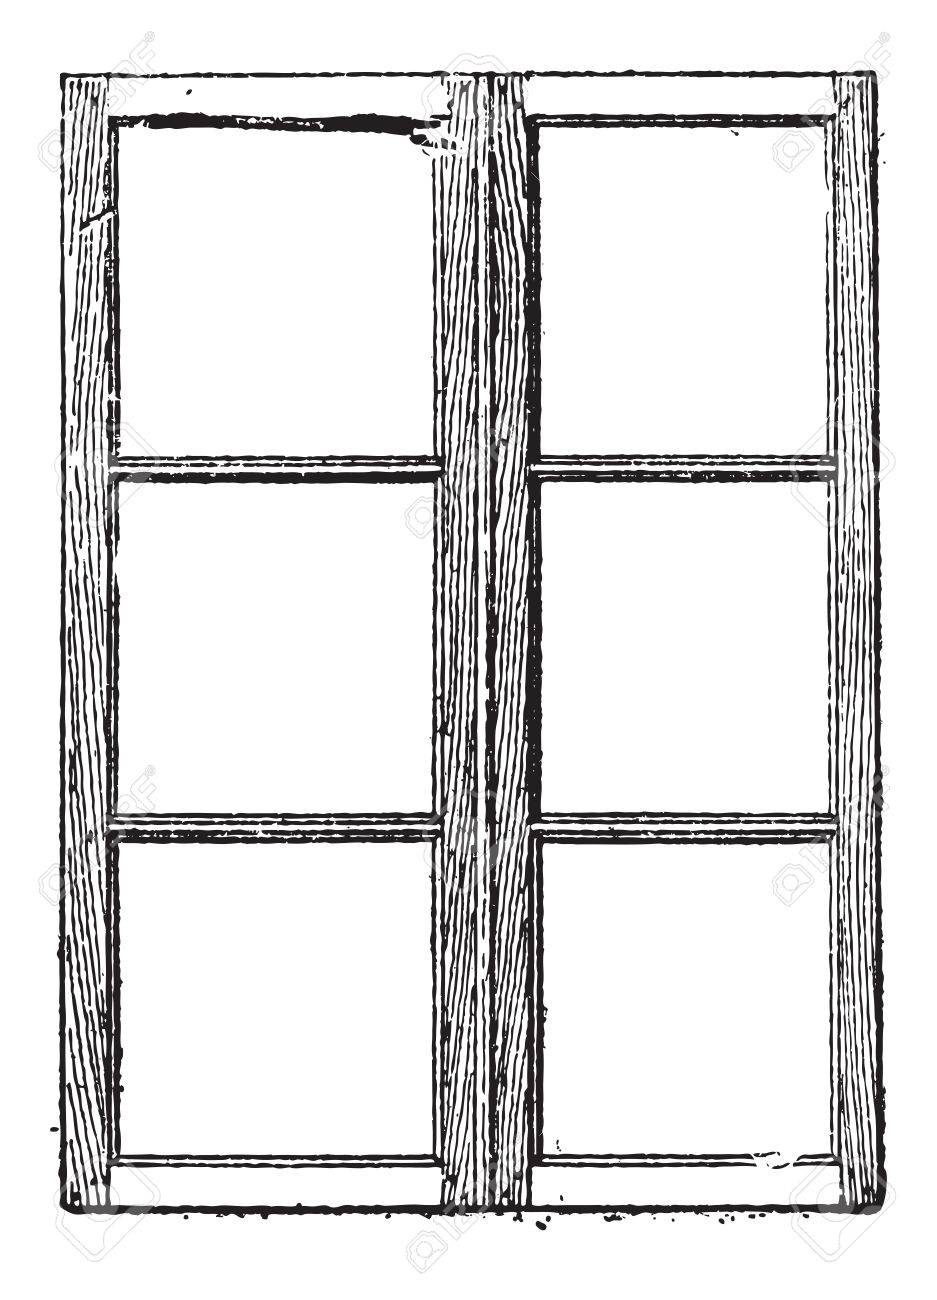 Muntin shown are muntins separating and holding the glass panes of a window vintage  sc 1 st  123RF Stock Photo & Muntin Shown Are Muntins Separating And Holding The Glass Panes ...